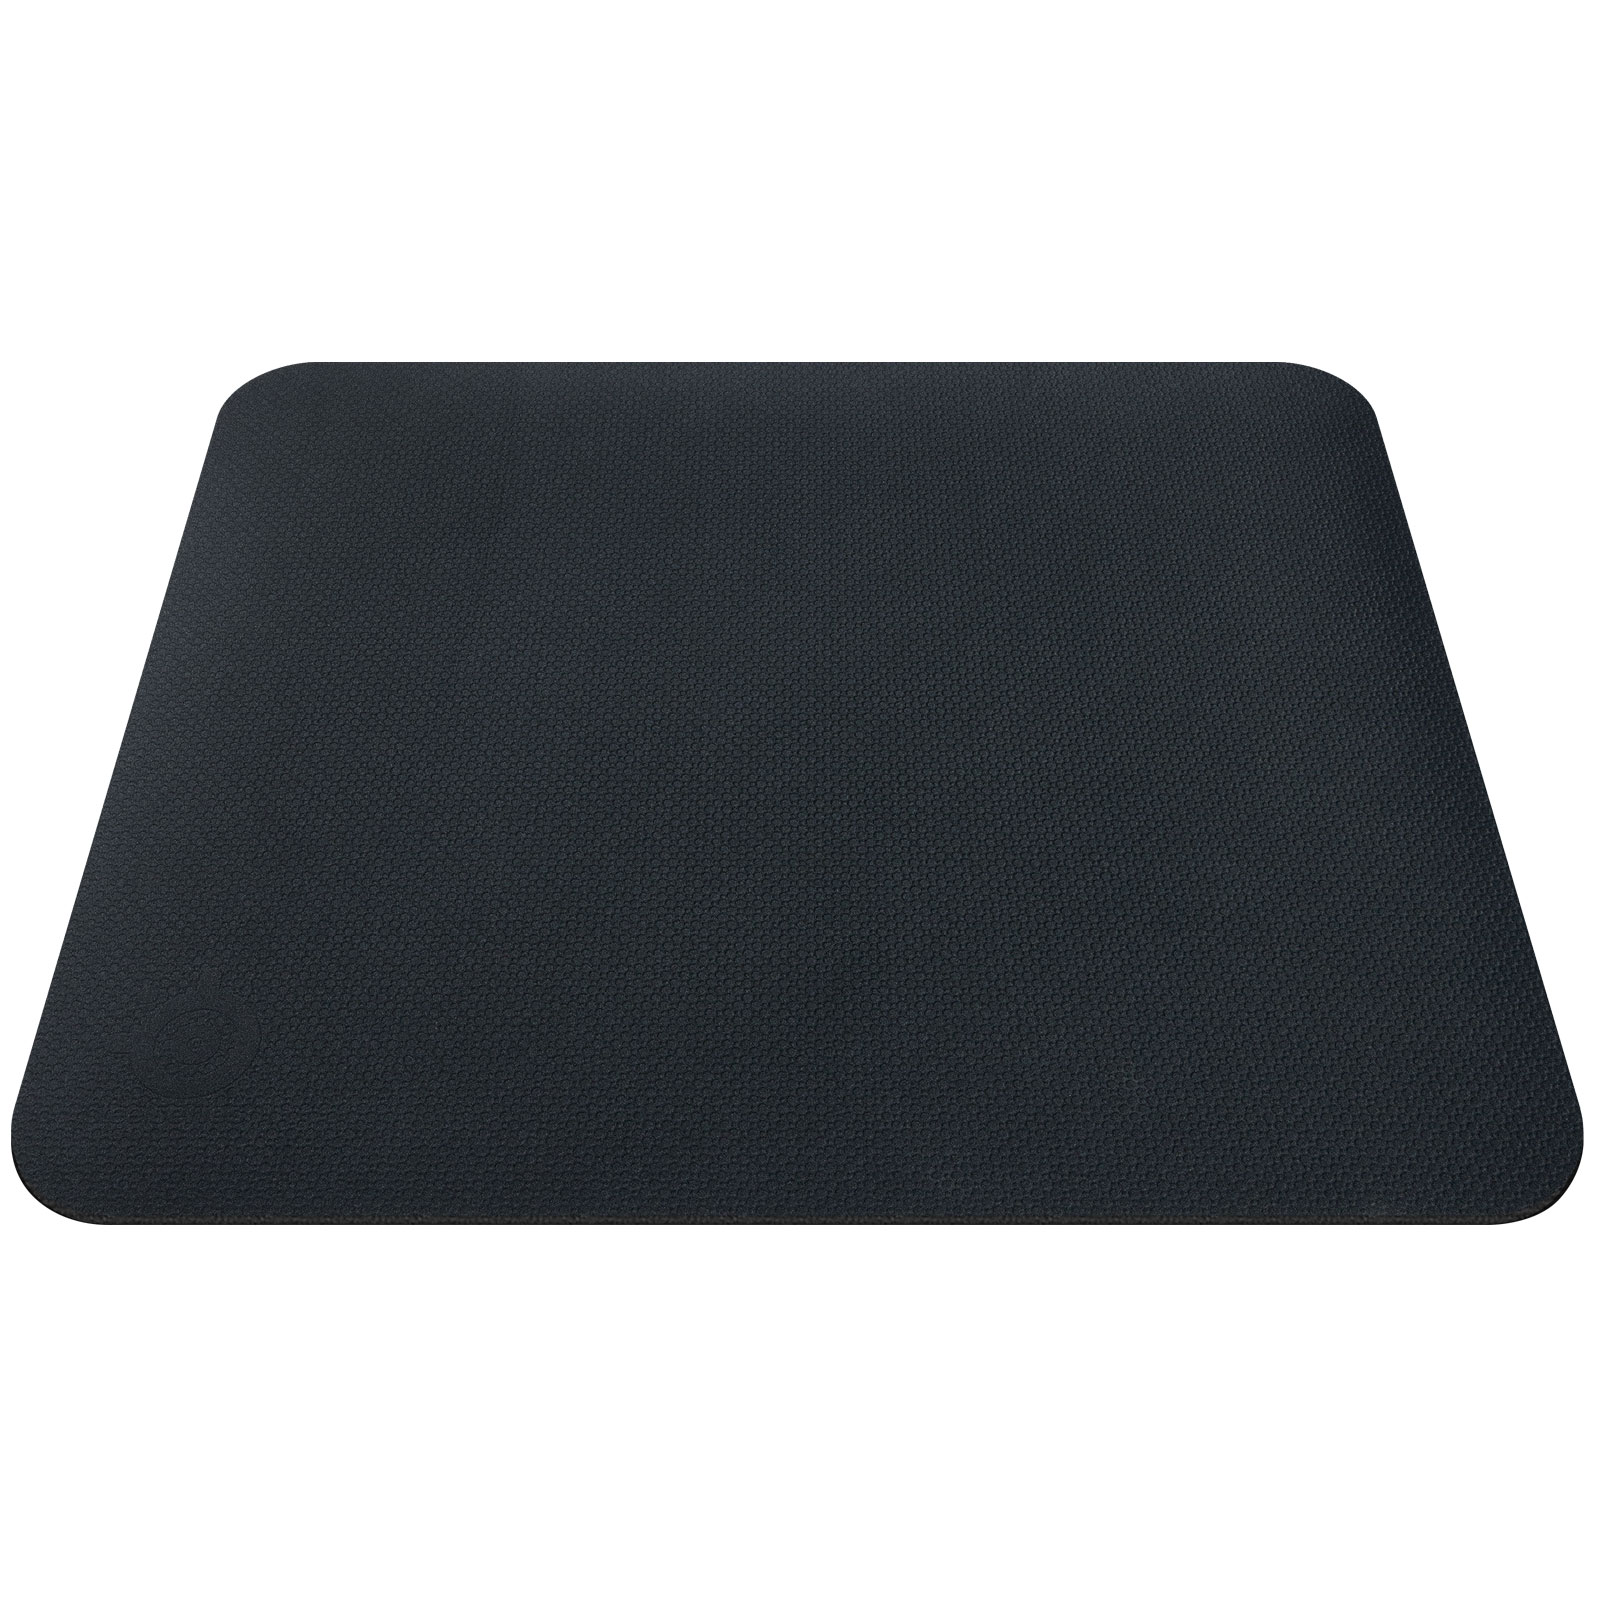 steelseries dex tapis de souris steelseries sur. Black Bedroom Furniture Sets. Home Design Ideas